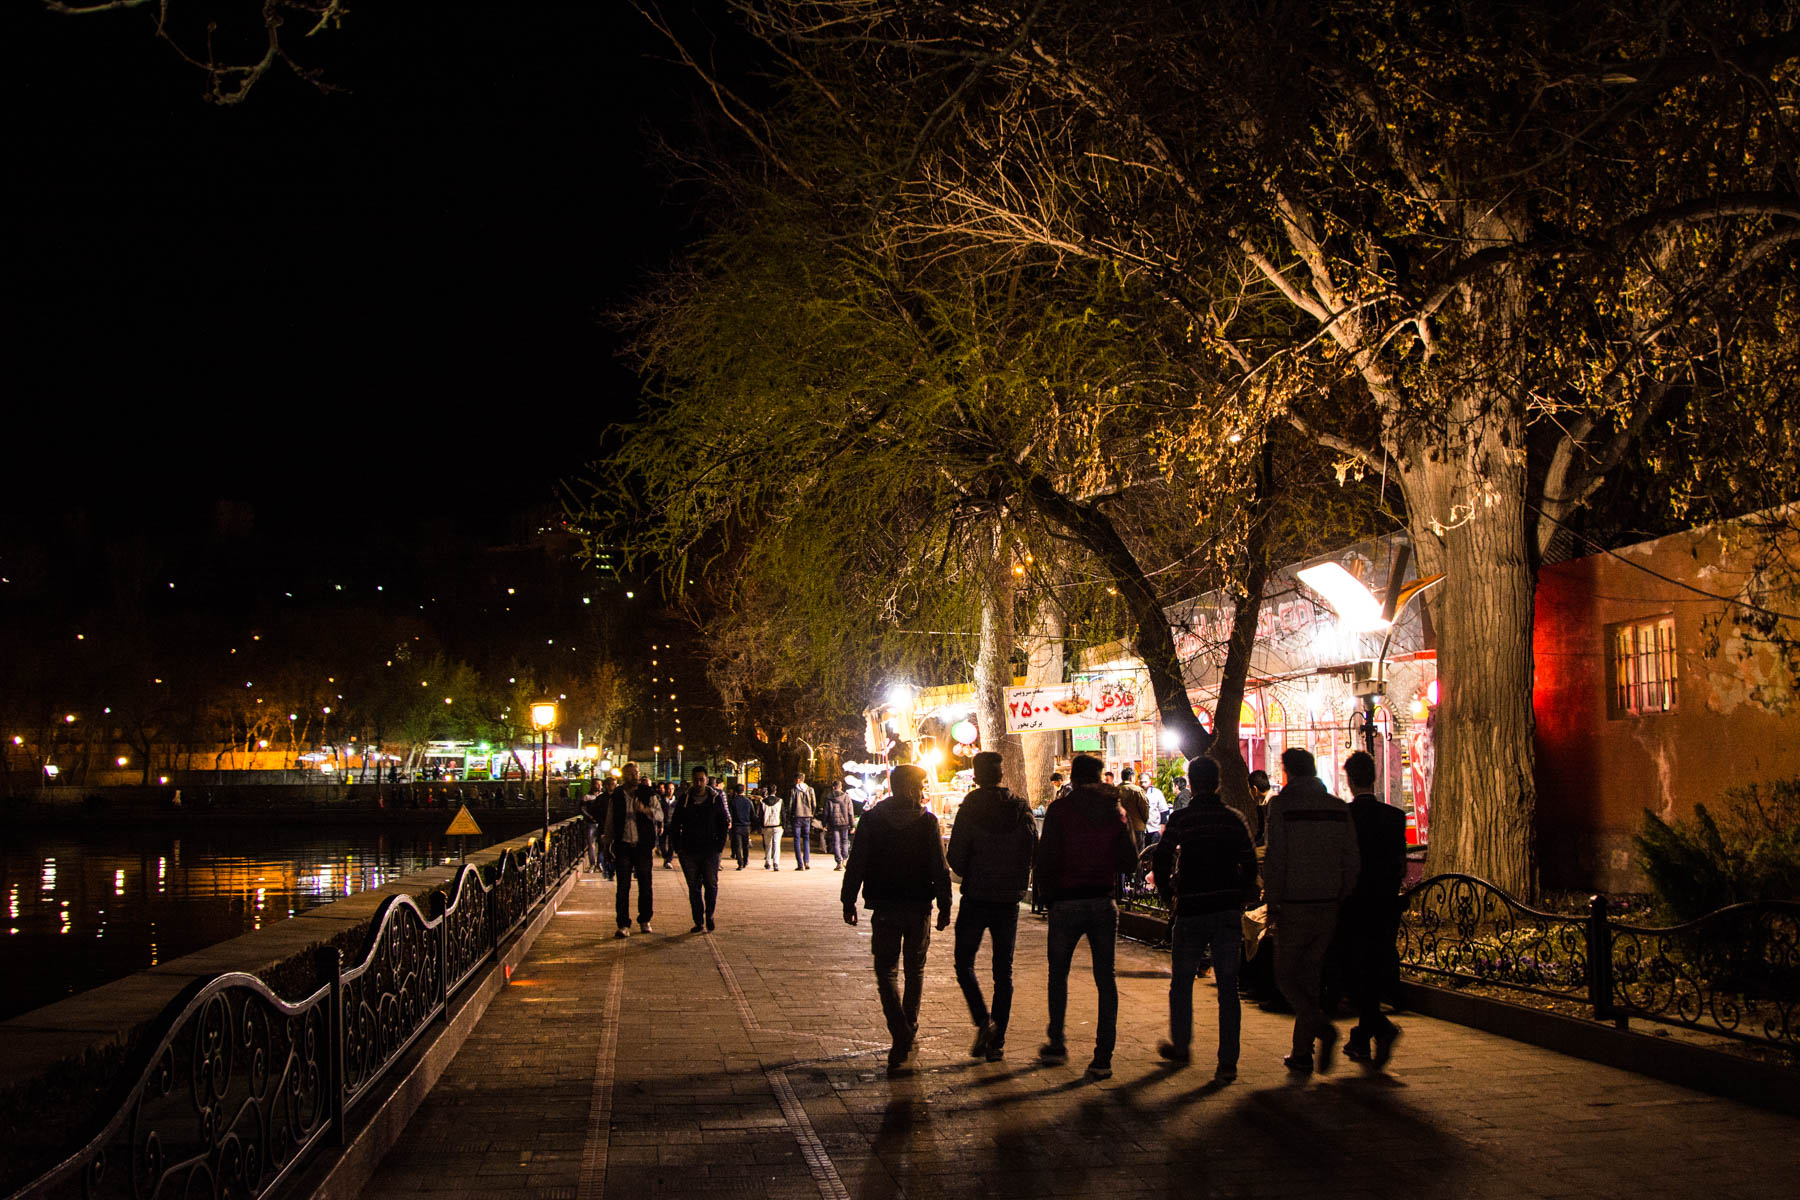 People walking around Shahgoli park in Tabriz, Iran at night.